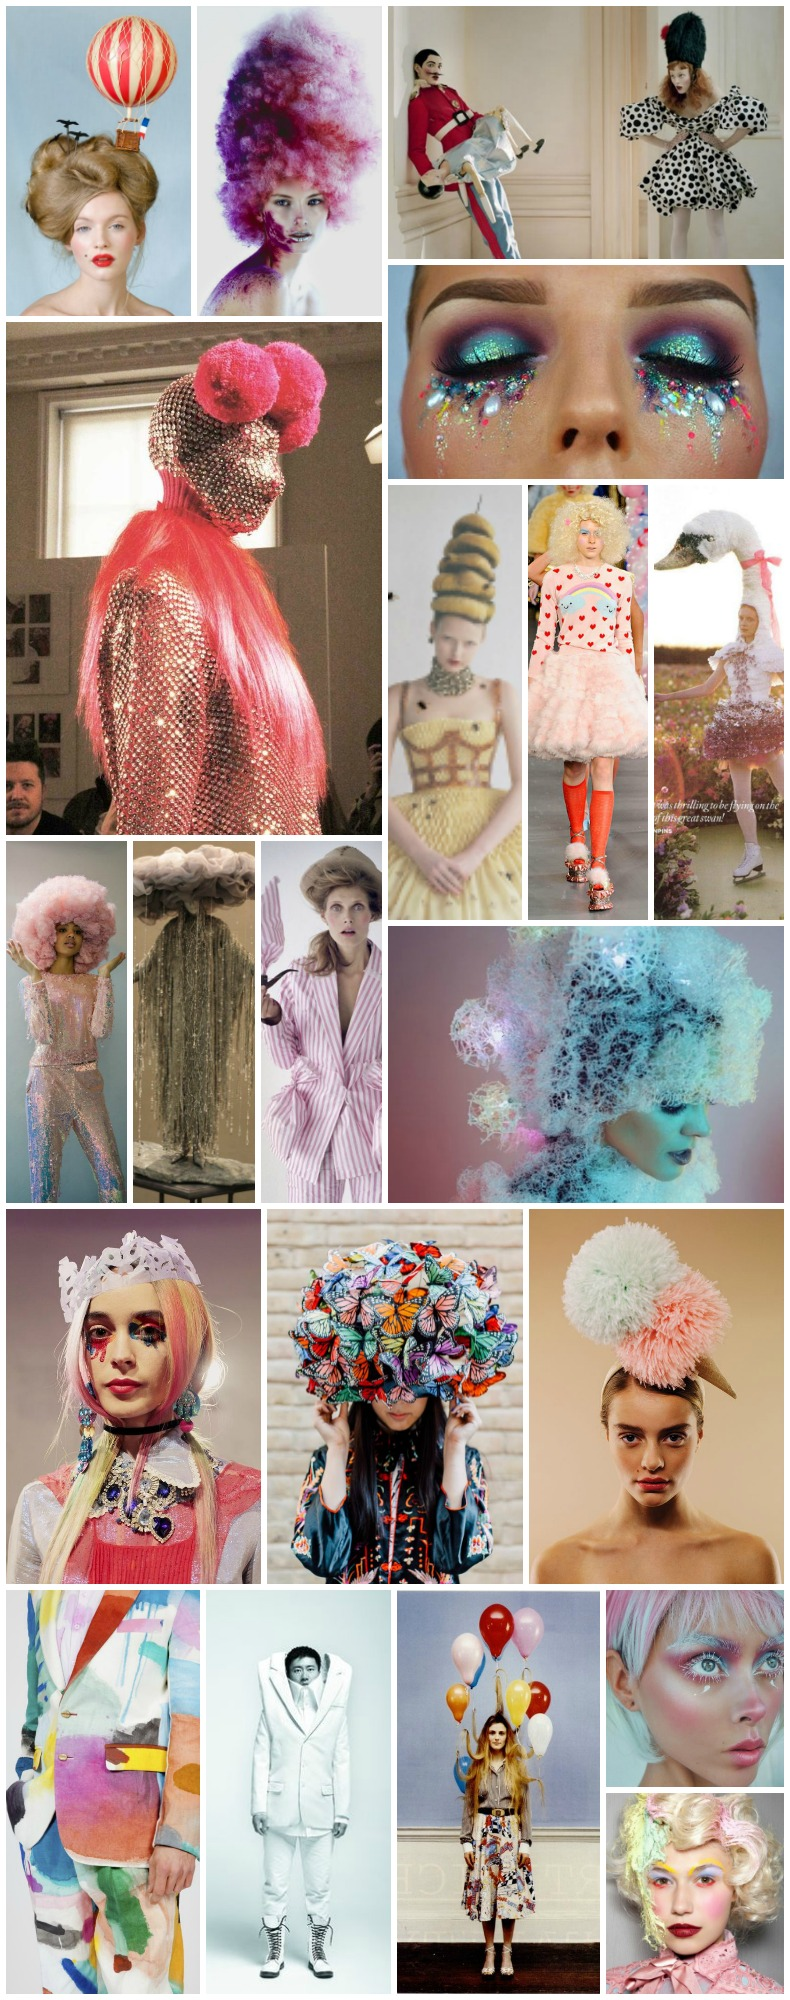 "Shambala Cloud Cuckoo Land fancy dress theme inspiration - surrealist fairytale festival costume mood board. ""Cloud cuckoo land refers to a state of absurdly over-optimistic fantasy or an unrealistically idealistic state where everything is perfect"" ""Think dancing cupcakes, candy floss clouds and pure, sugar coated escapism. A month of Sundays at the end of the rainbow, where pigs fly high past blue moons. An all singing, all dancing adventure into utopia."""